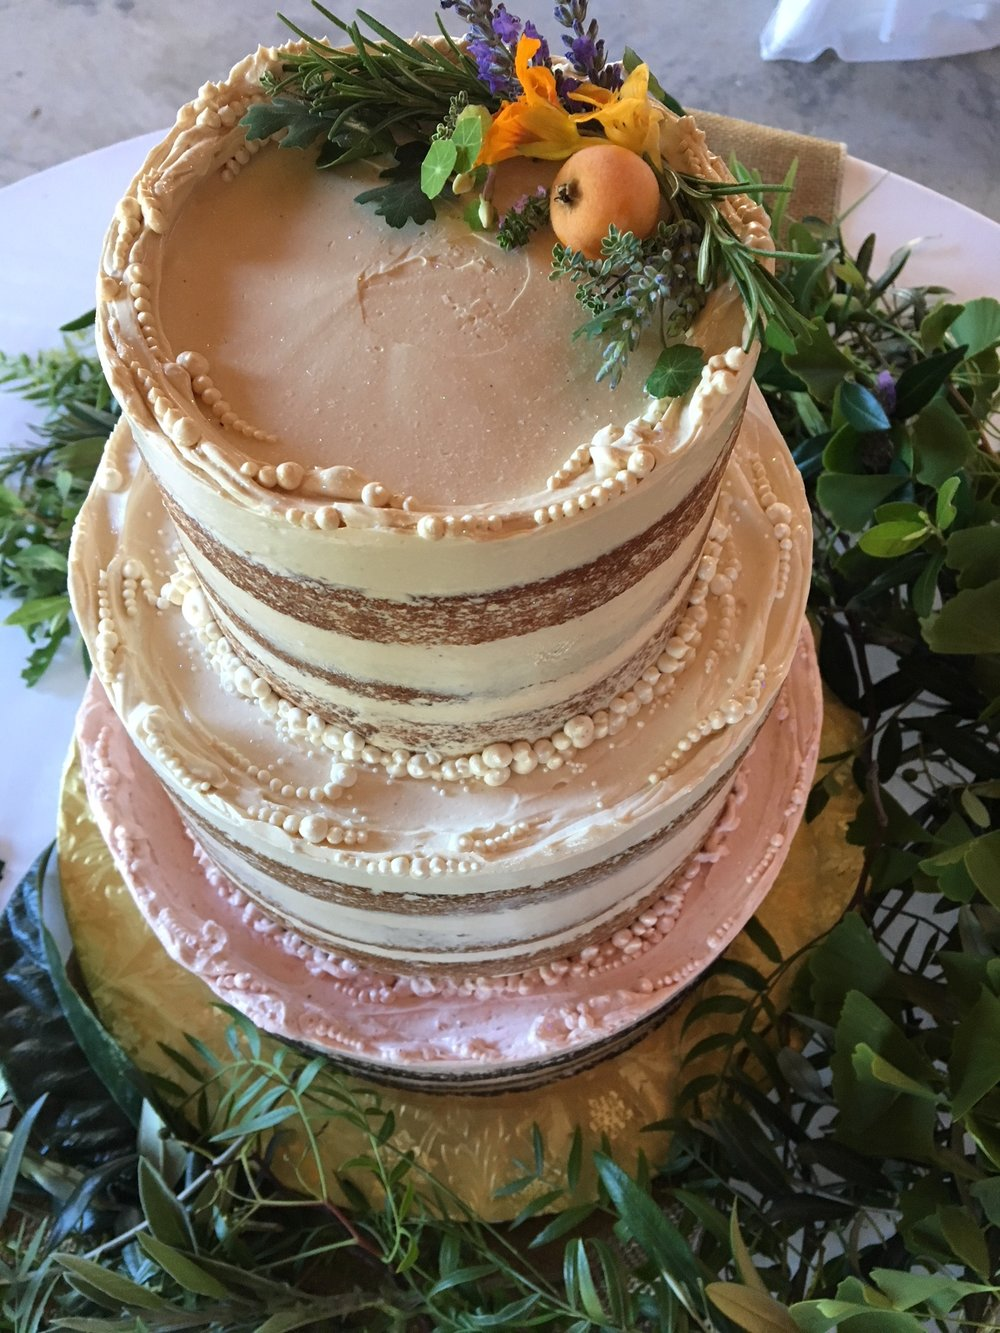 Three-Flavor Tiered Floral Cake